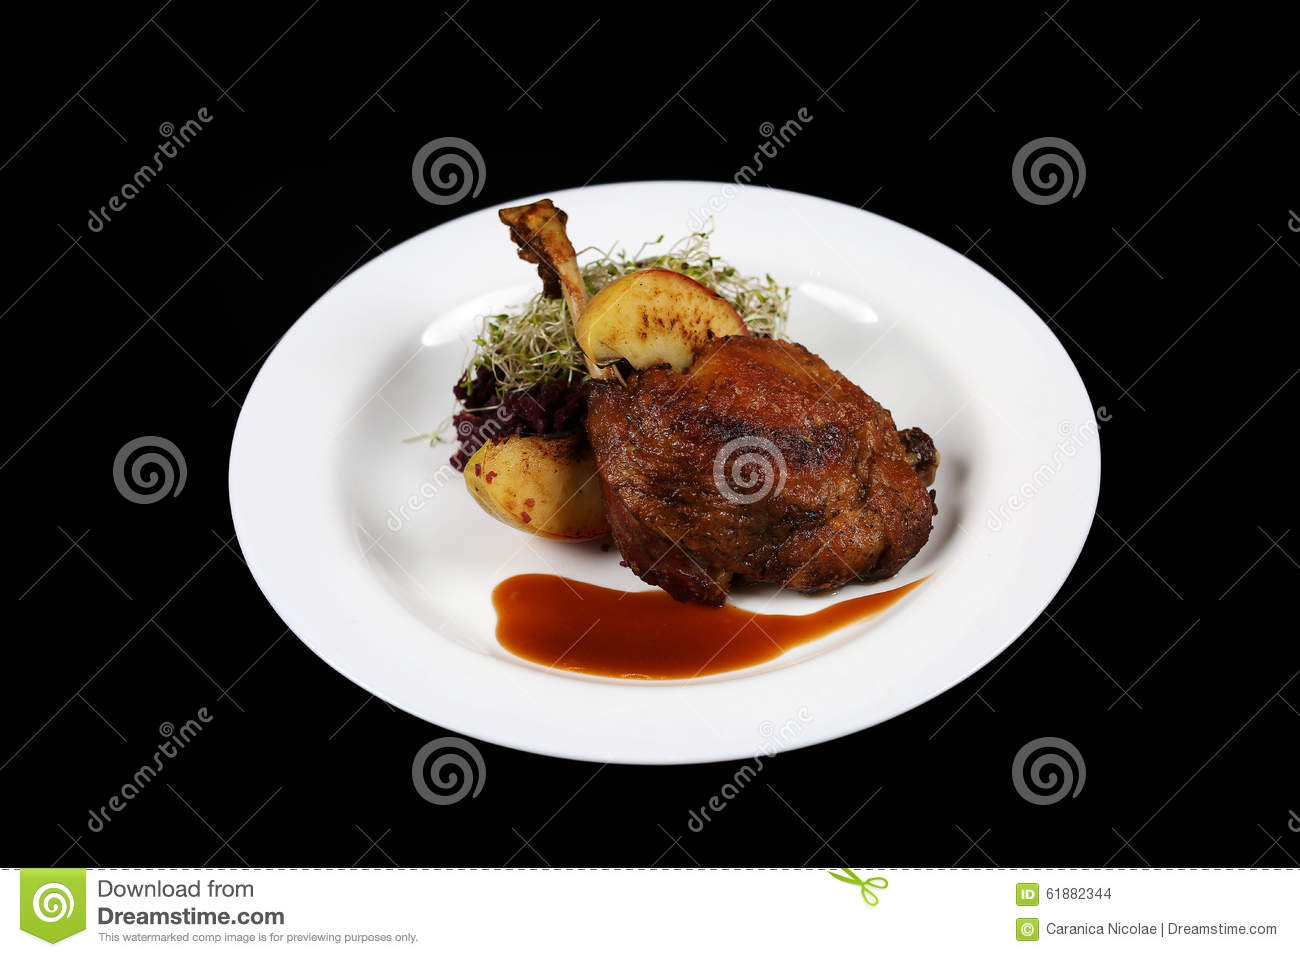 Plate With Food On A Black Background Stock Photo - Image ...